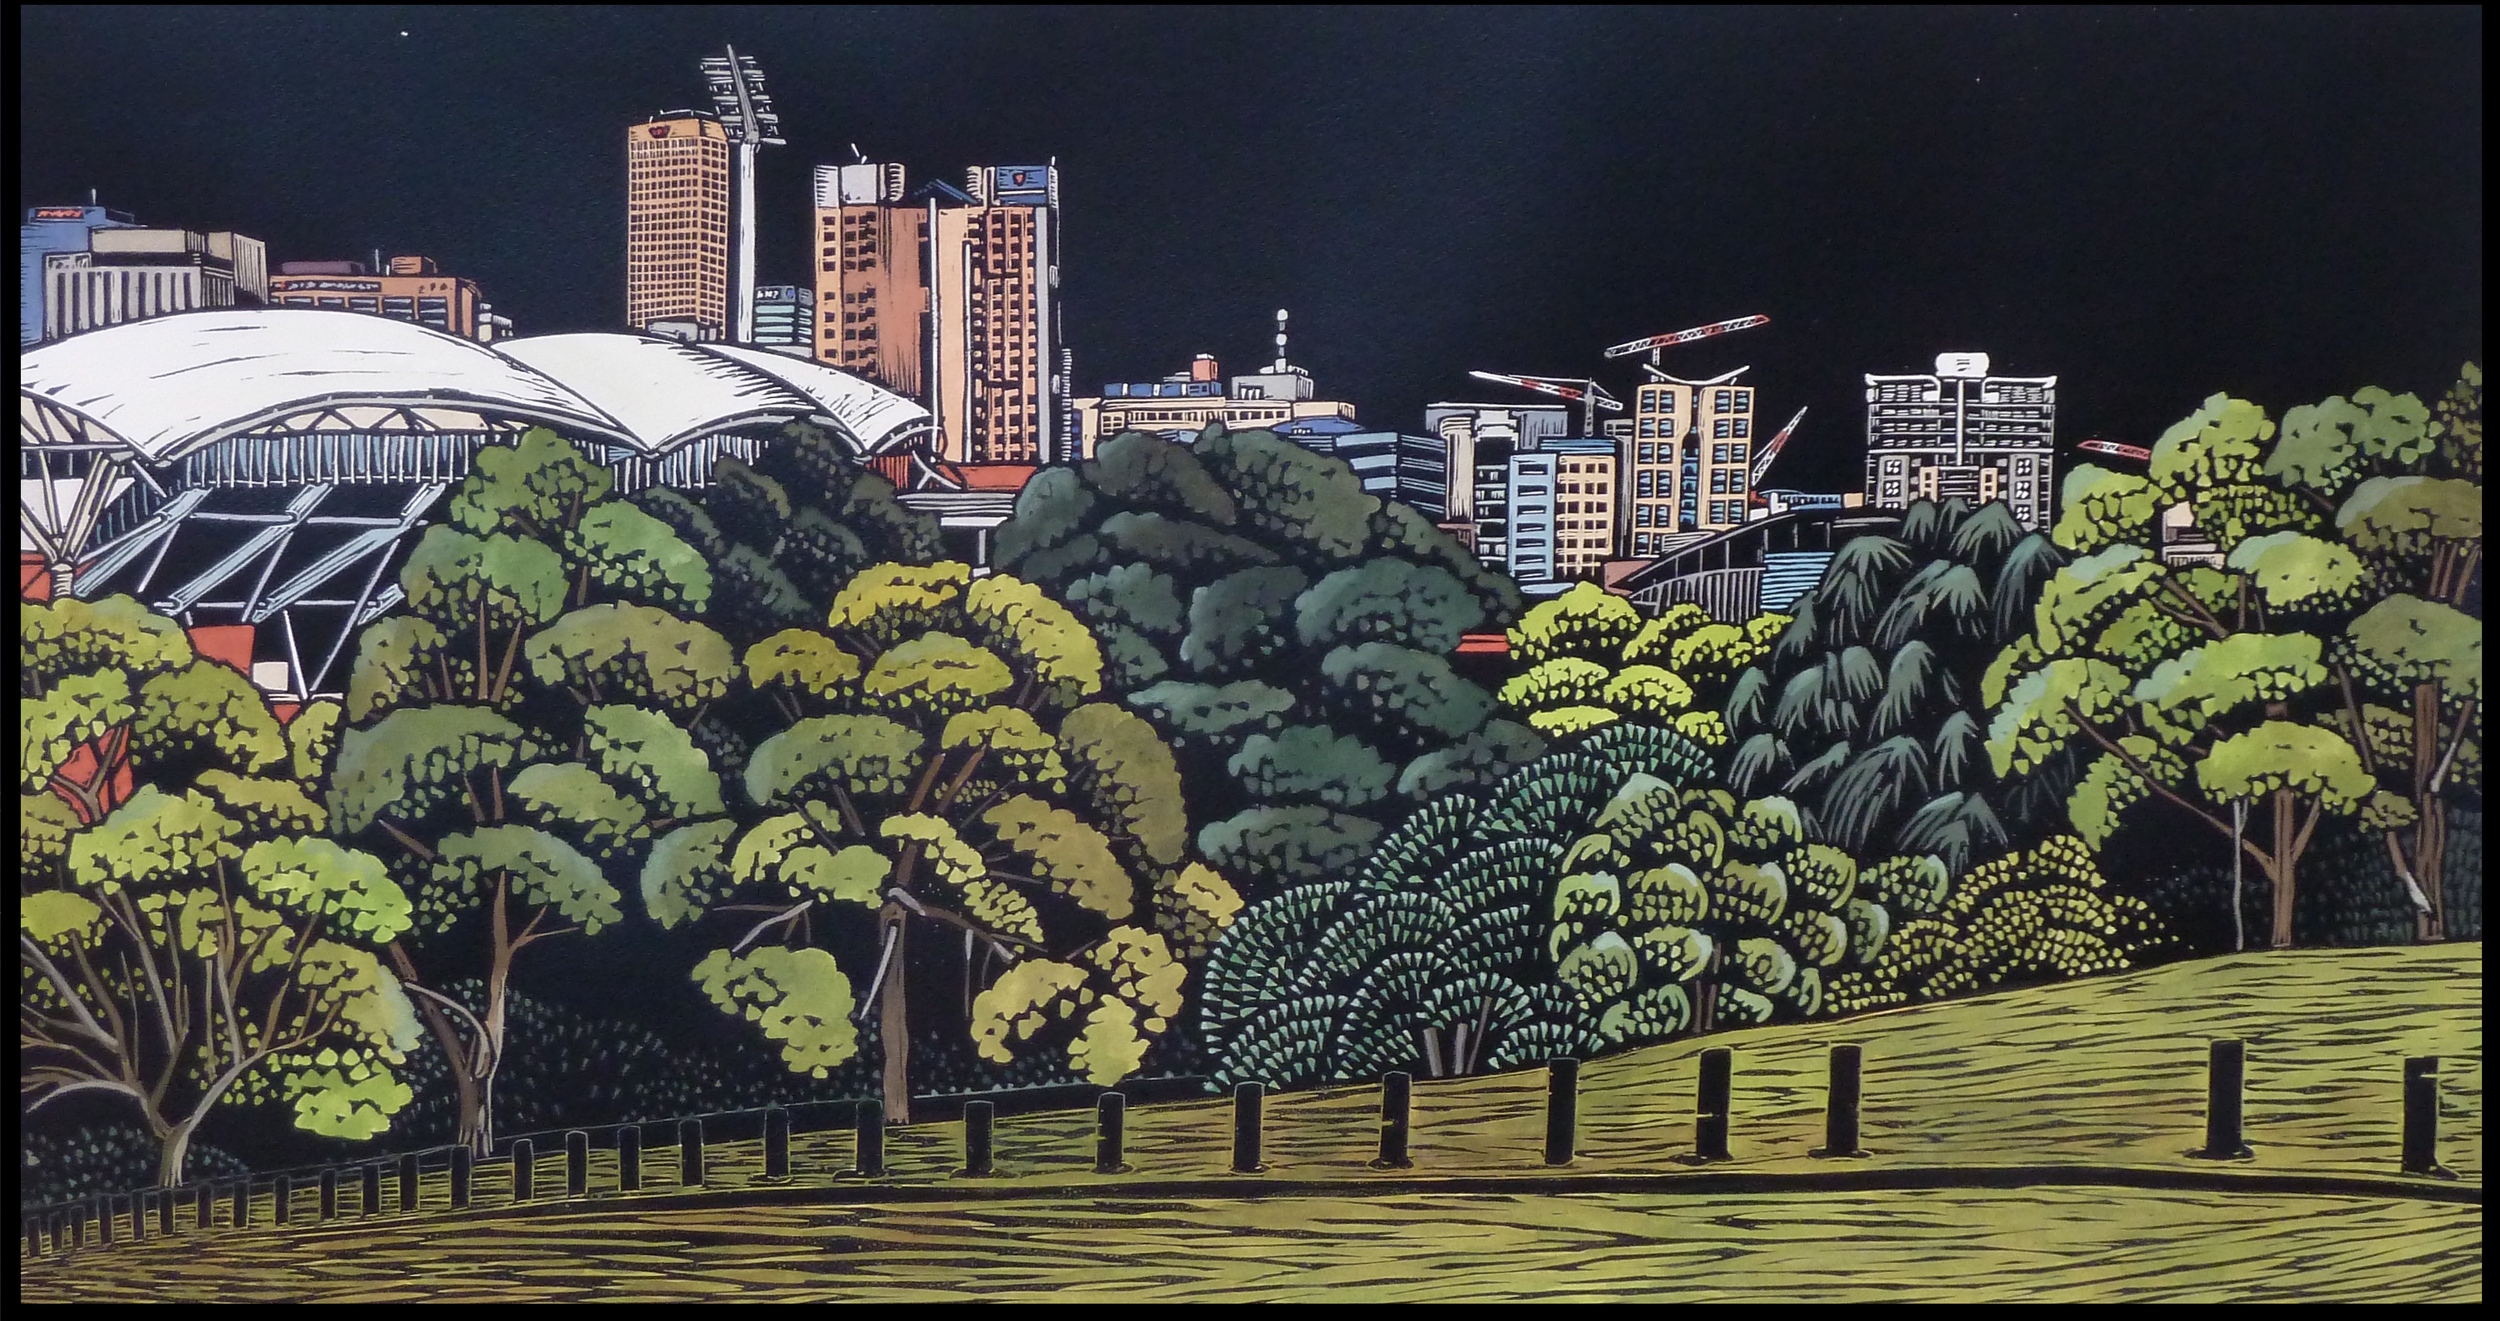 Adelaide City and the Park Lands: Colonel Light's Vision   Hand coloured linocut, 2013  Edition of 4  Image size: 46 cm x 86 cm  Paper size: 70 cm x 100 cm  SOLD OUT   Adelaide City and the Park Lands: Colonel Light's Vision  explores the spirit of Adelaide and the surrounding Park Lands. The piece reflects the complexity and uniqueness of the city; what is old and new, natural and man-made. As new buildings are constructed and old ones deconstructed, the Park Lands remain: a constant encircling a continuously evolving cityscape.